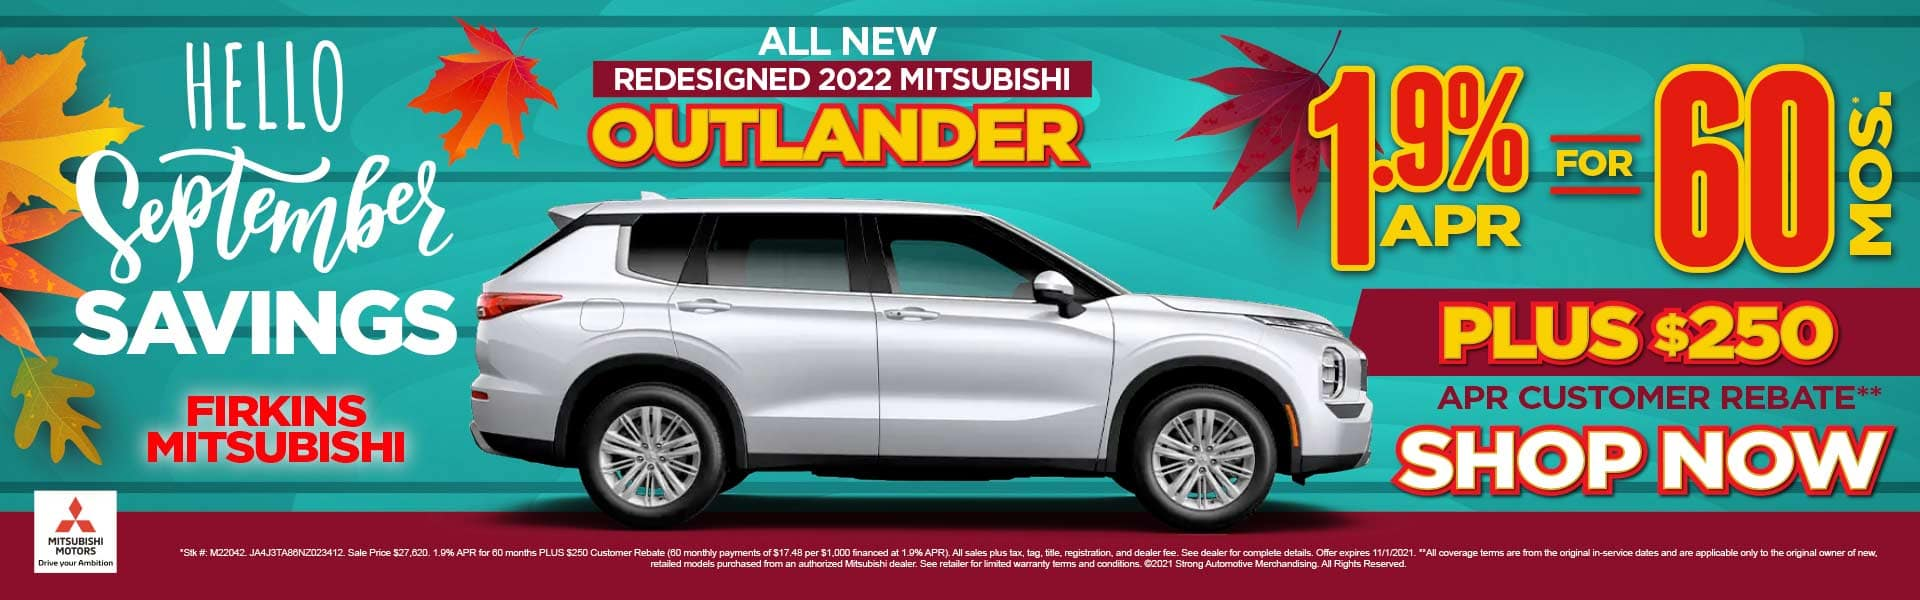 All New Redesigned 2022 Outlander – 1.9% for 60 mos plus $250 APR Customer Rebate* ACT NOW